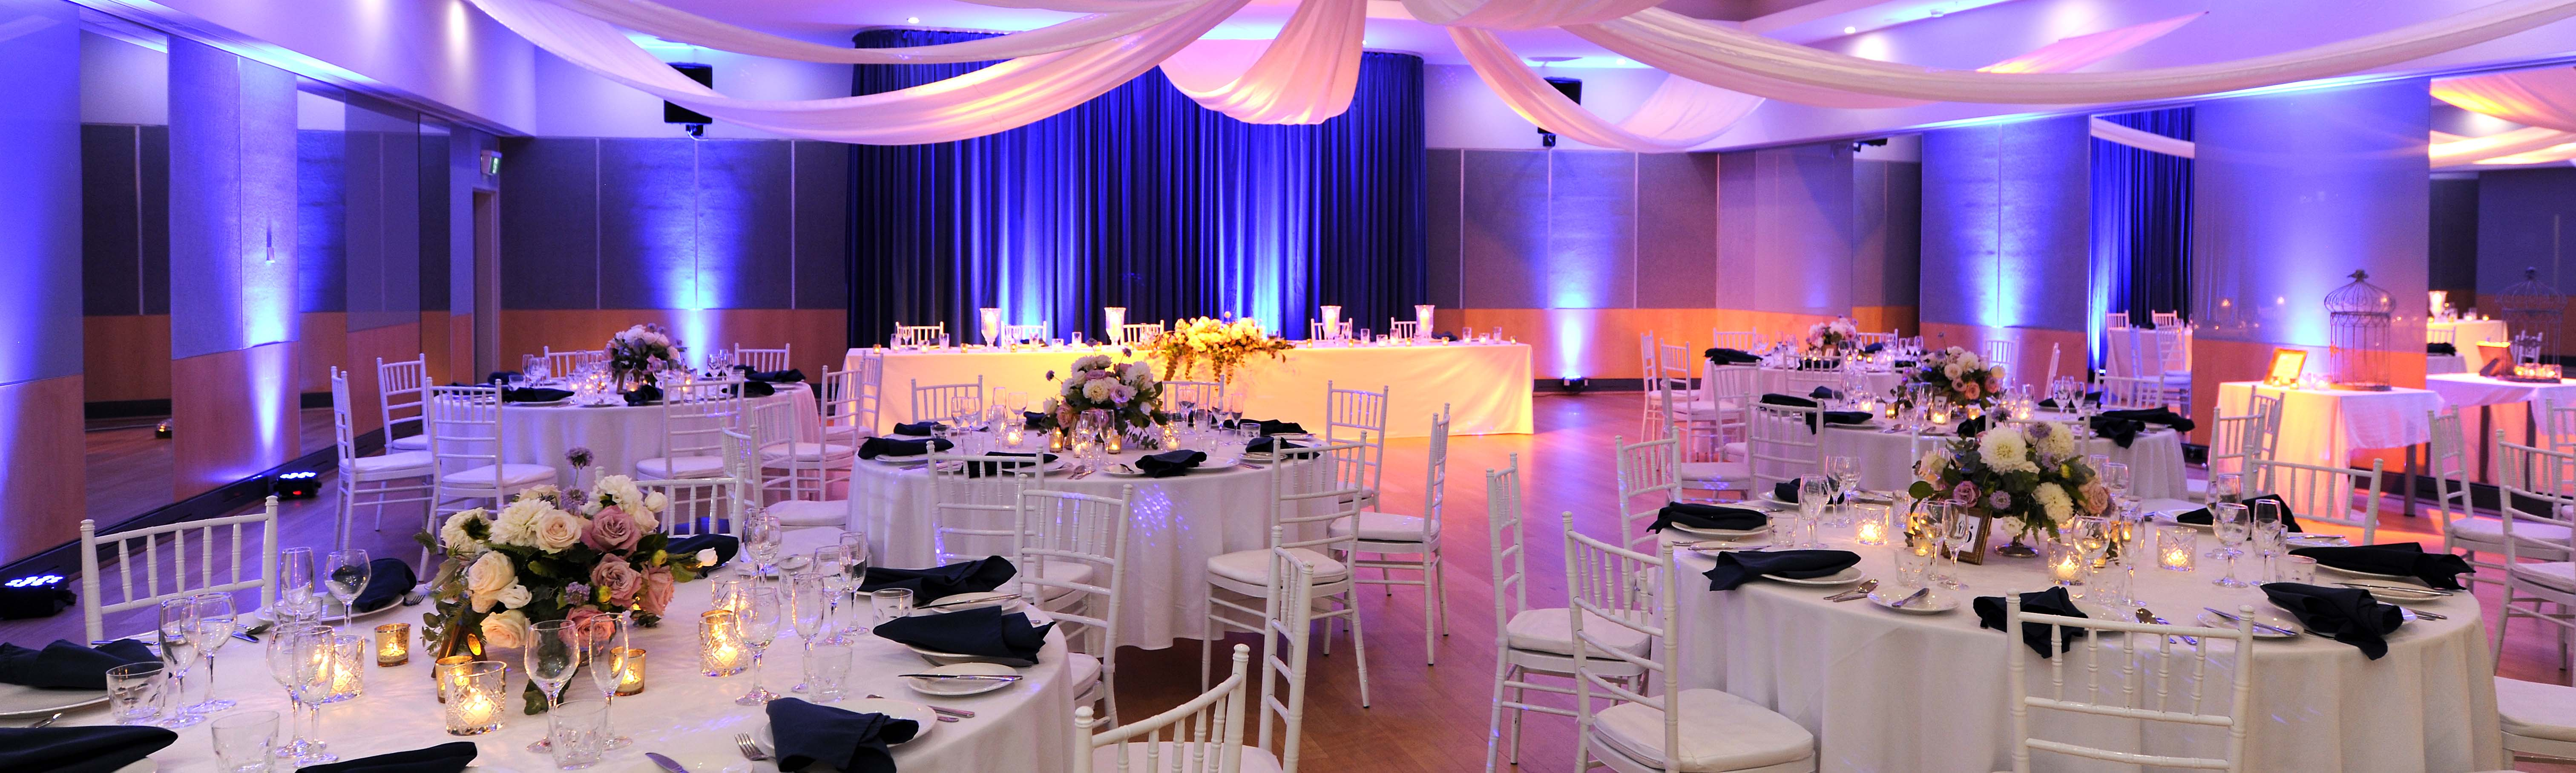 Wedding at The Boulevard Centre.jpg